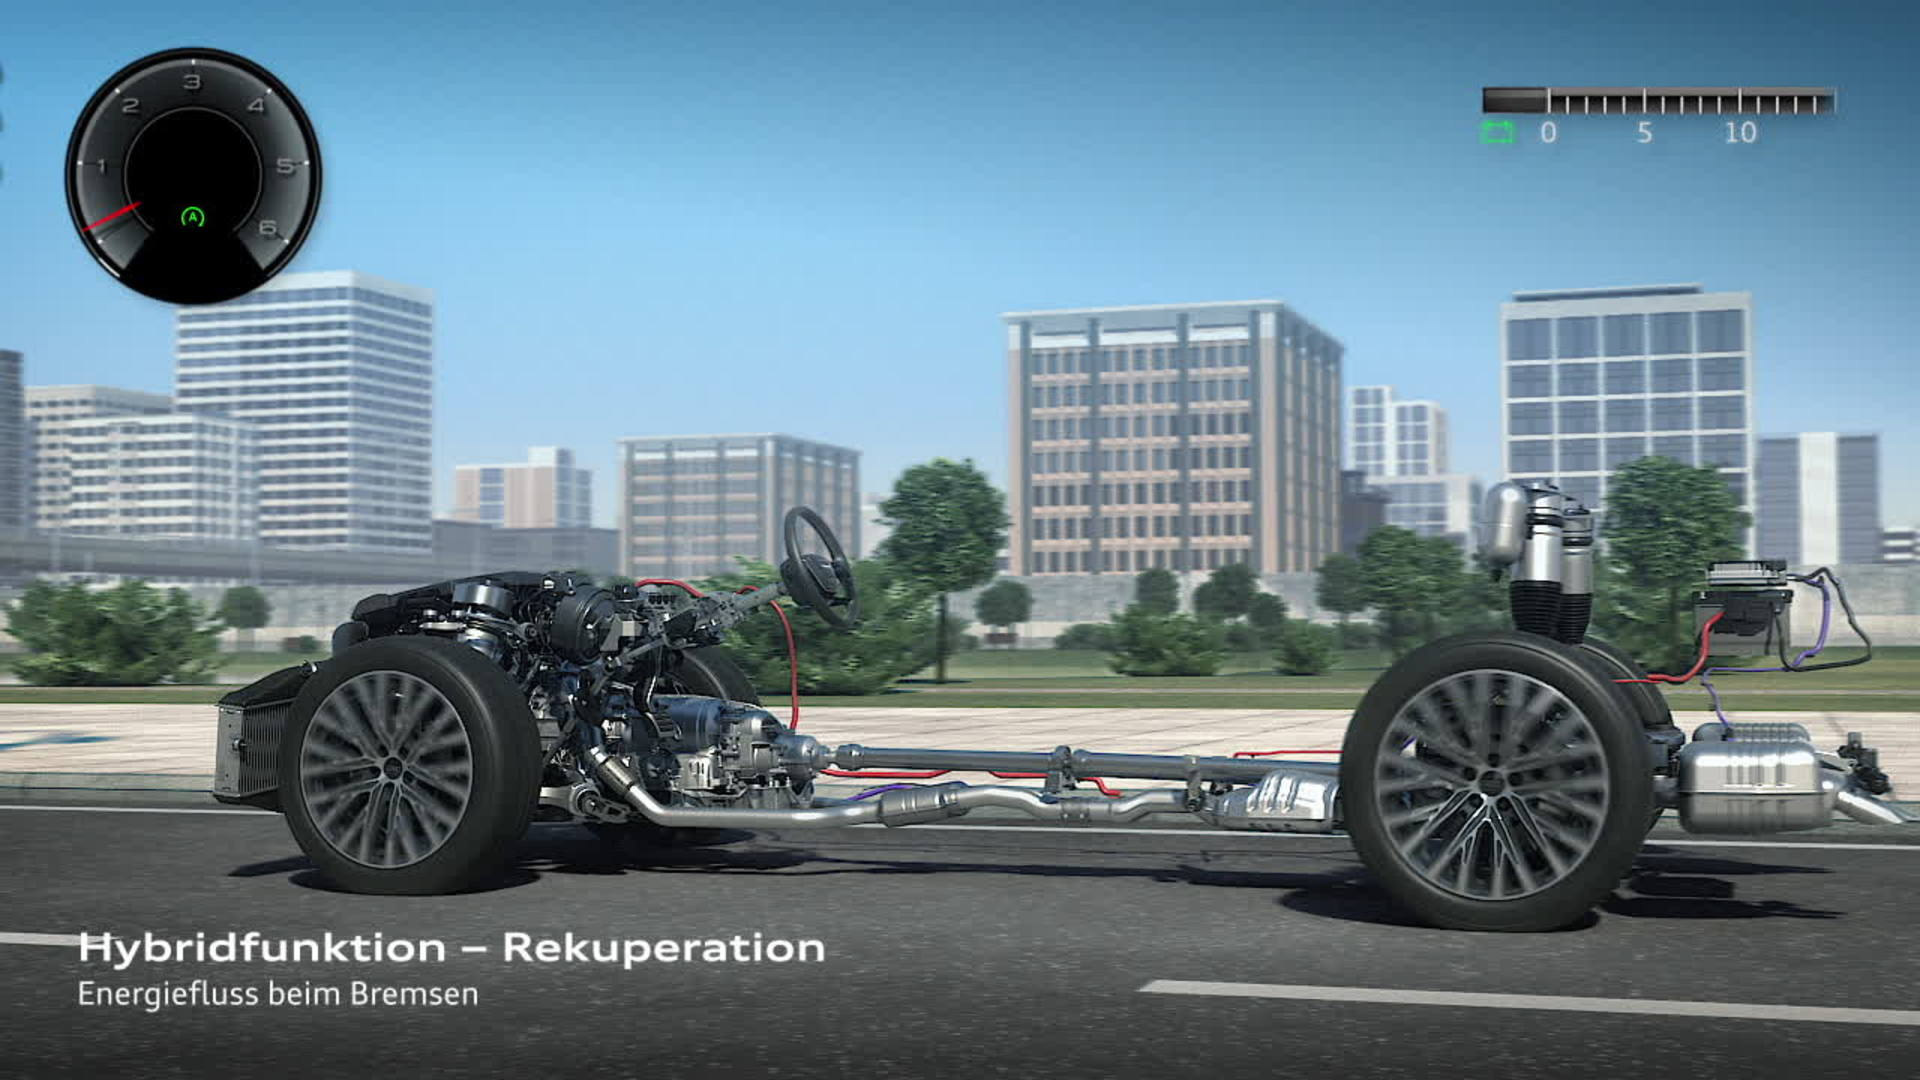 Audi A8 Mildhybrid Electric Vehicle (MHEV) - Animation